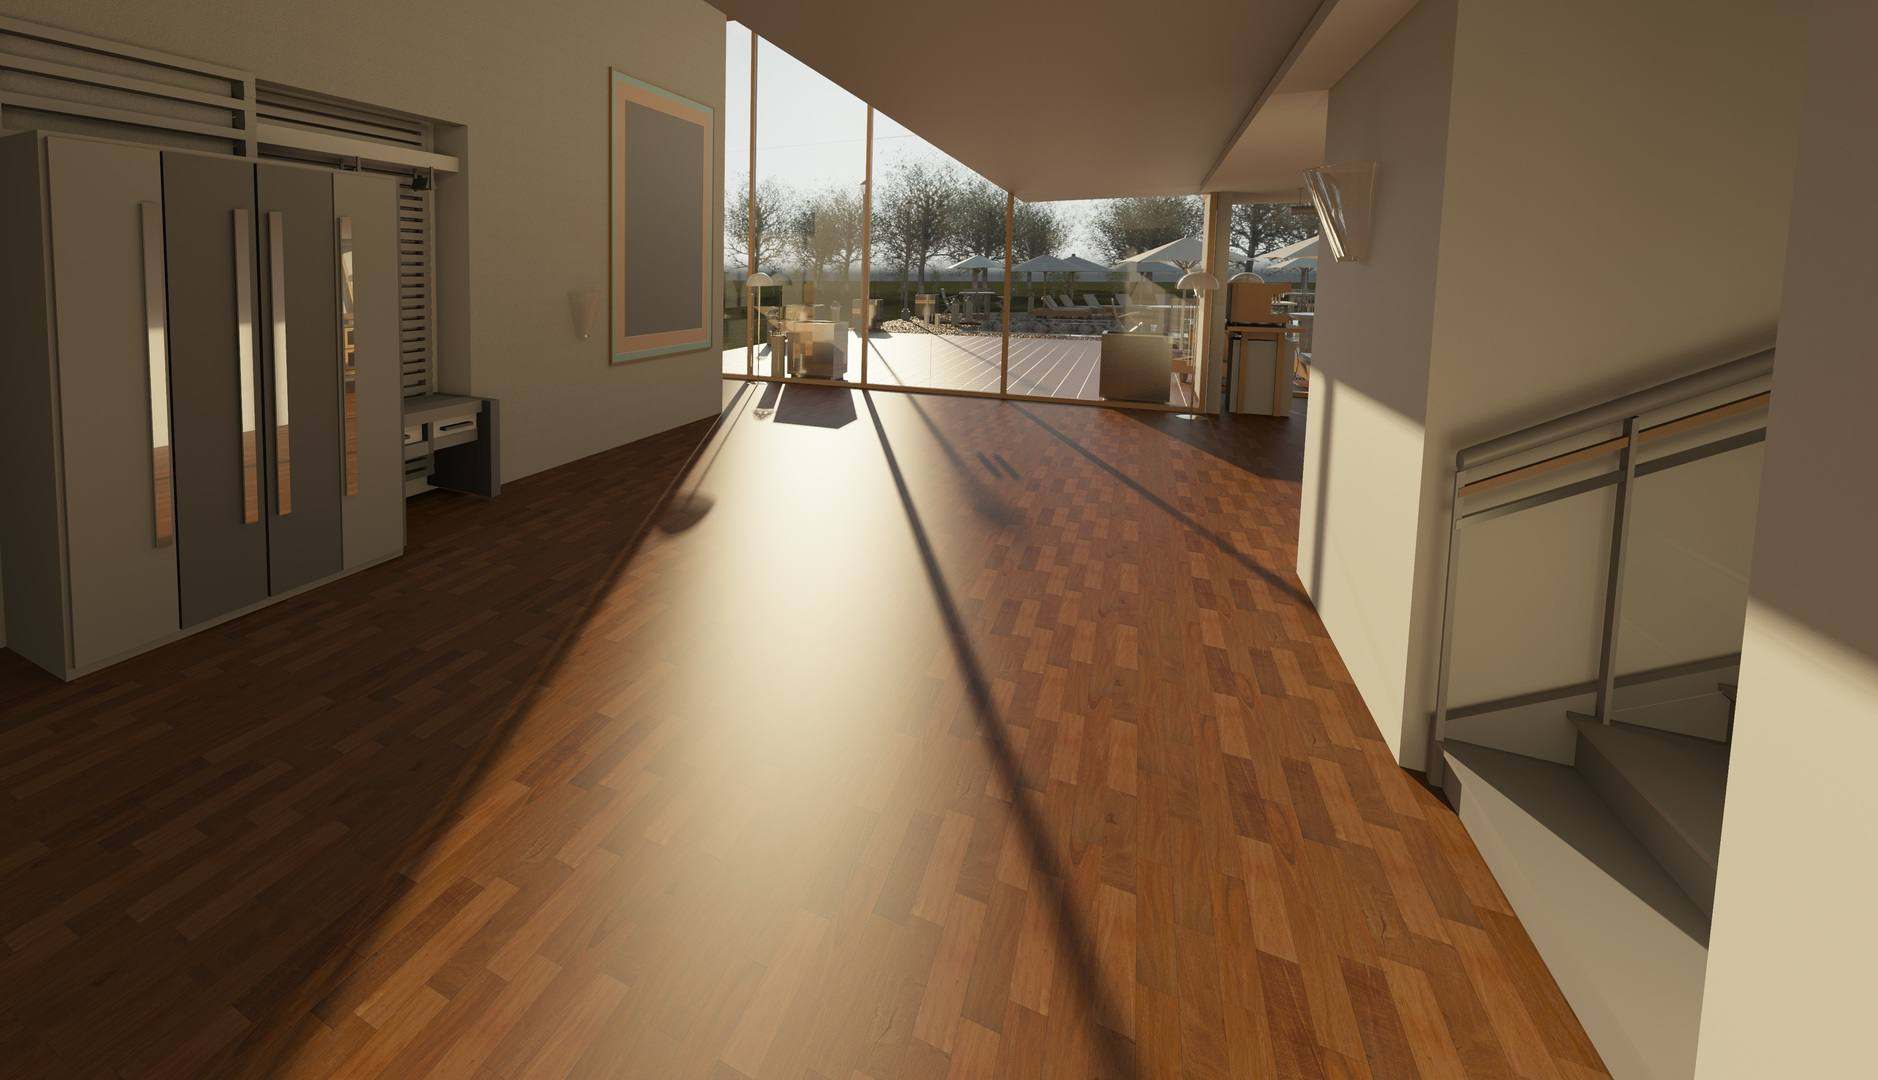 hardwood floors diy or professional of common flooring types currently used in renovation and building with regard to architecture wood house floor interior window 917178 pxhere com 5ba27a2cc9e77c00503b27b9